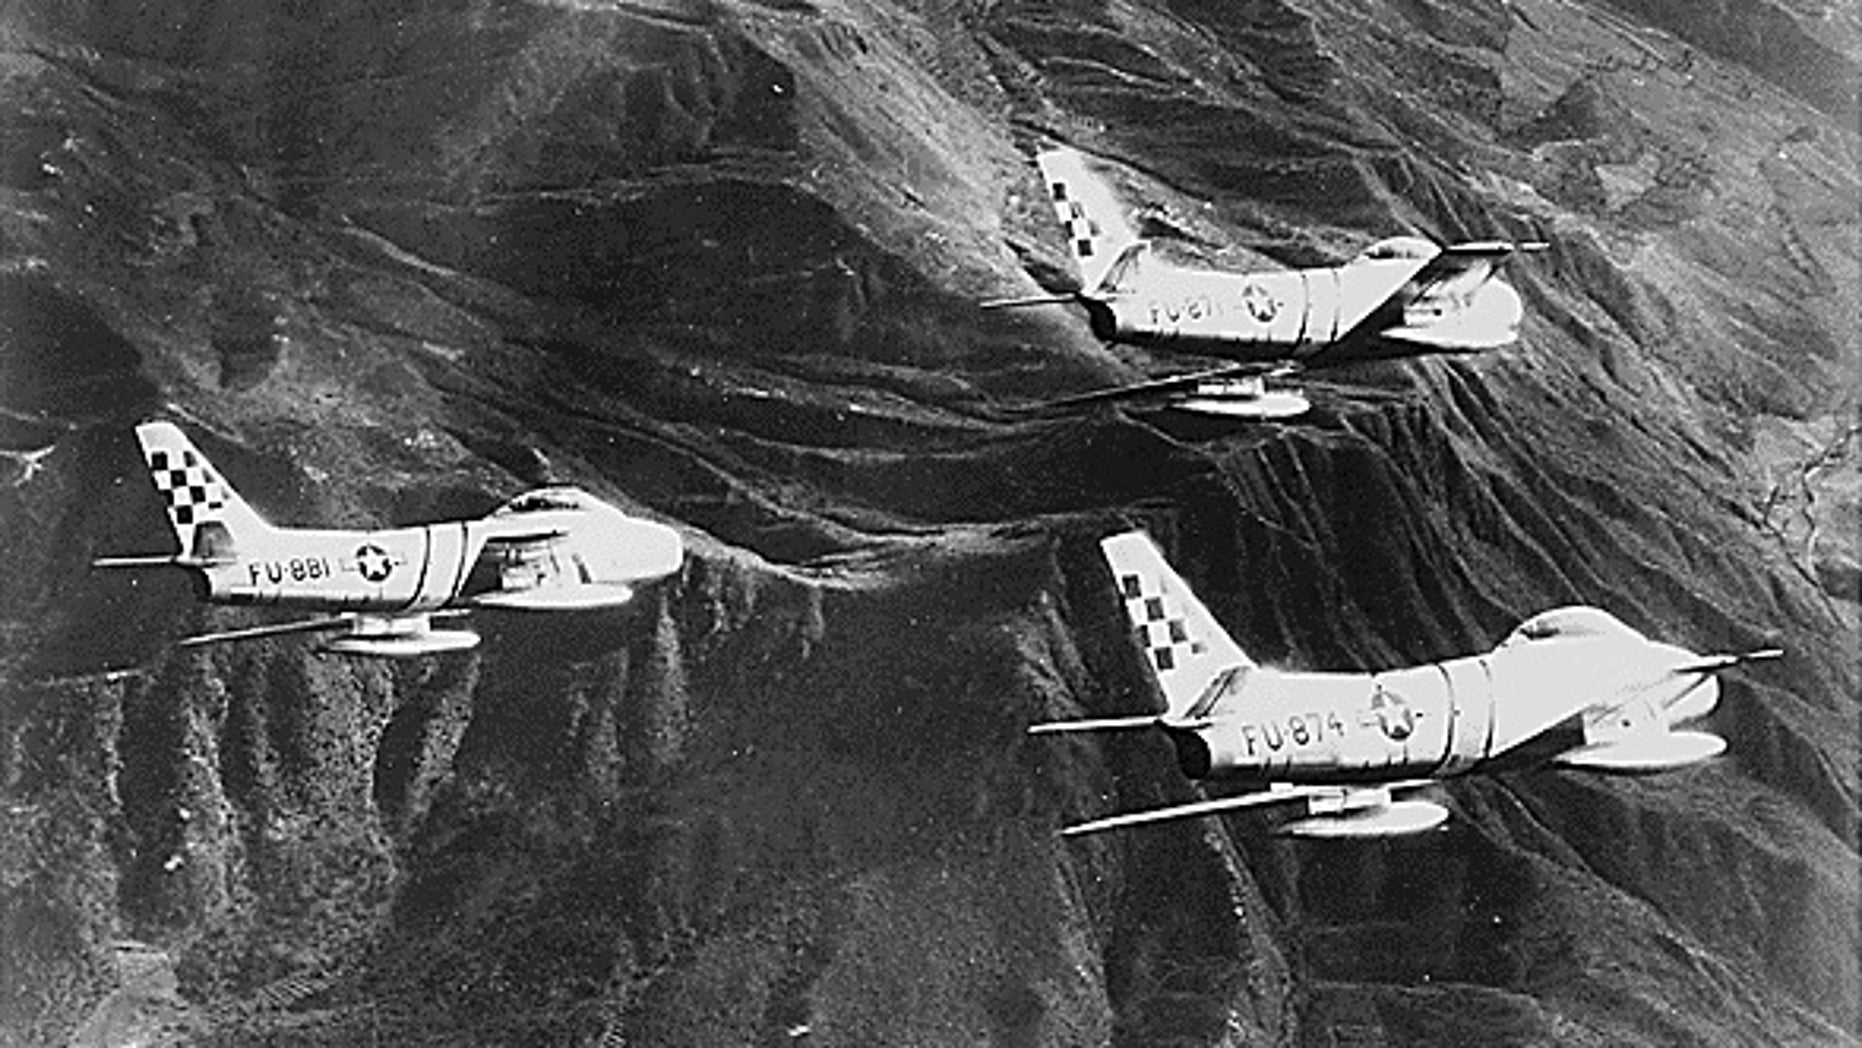 US Air Force F-86 Sabre jets in 1952.